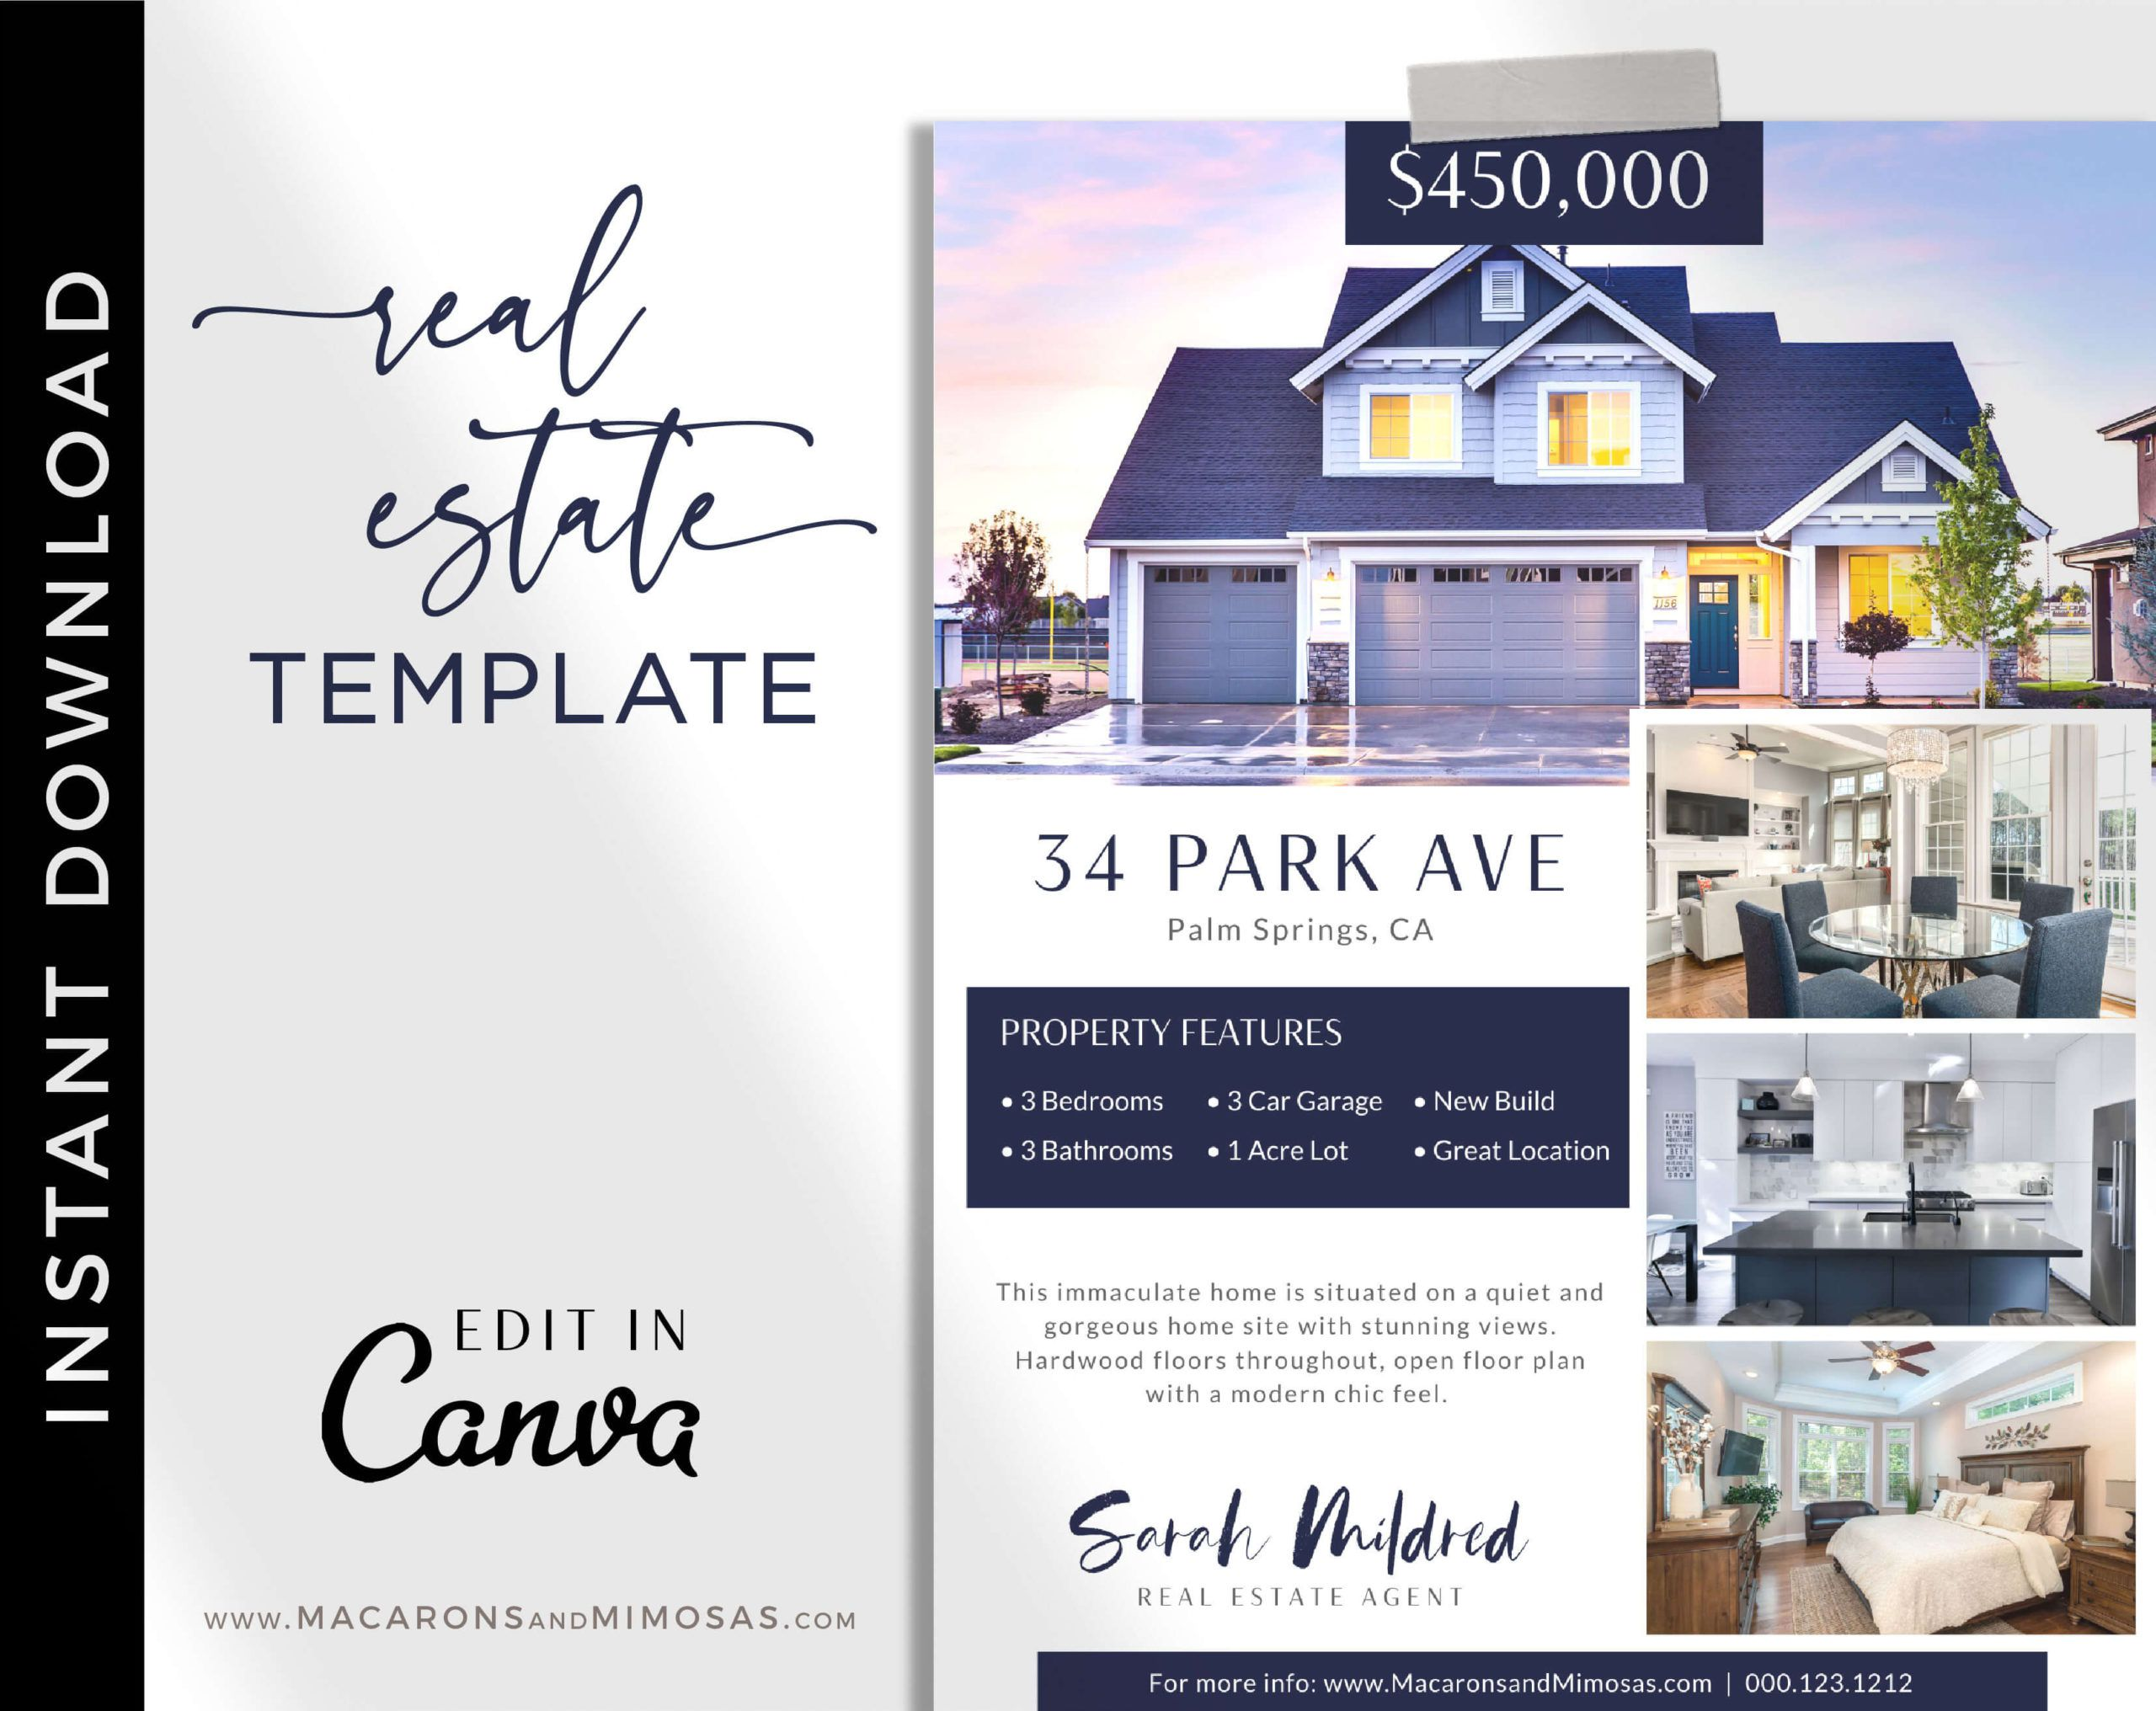 006 Formidable Open House Flyer Template High Definition  Templates Word Free Microsoft Real EstateFull